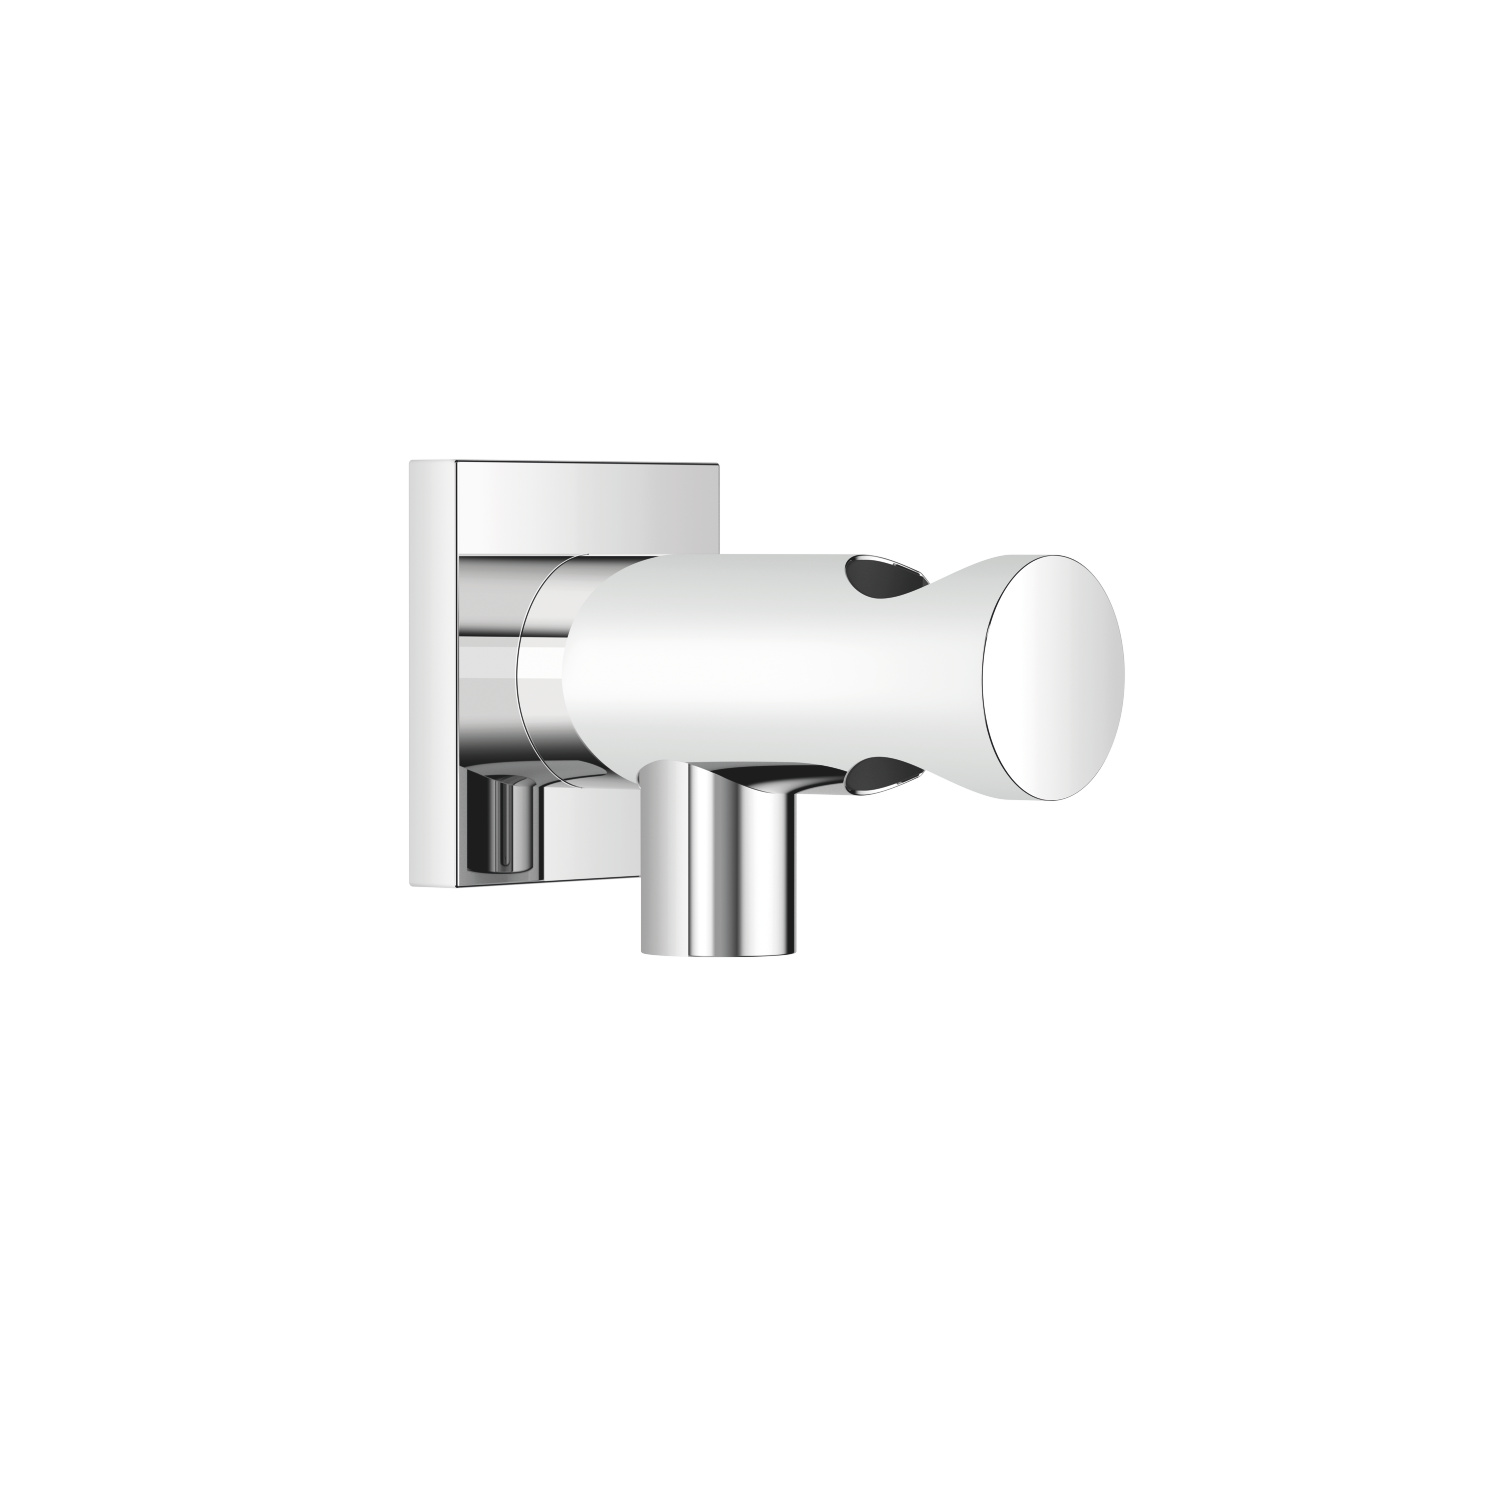 Wall elbow with integrated wall bracket - polished chrome